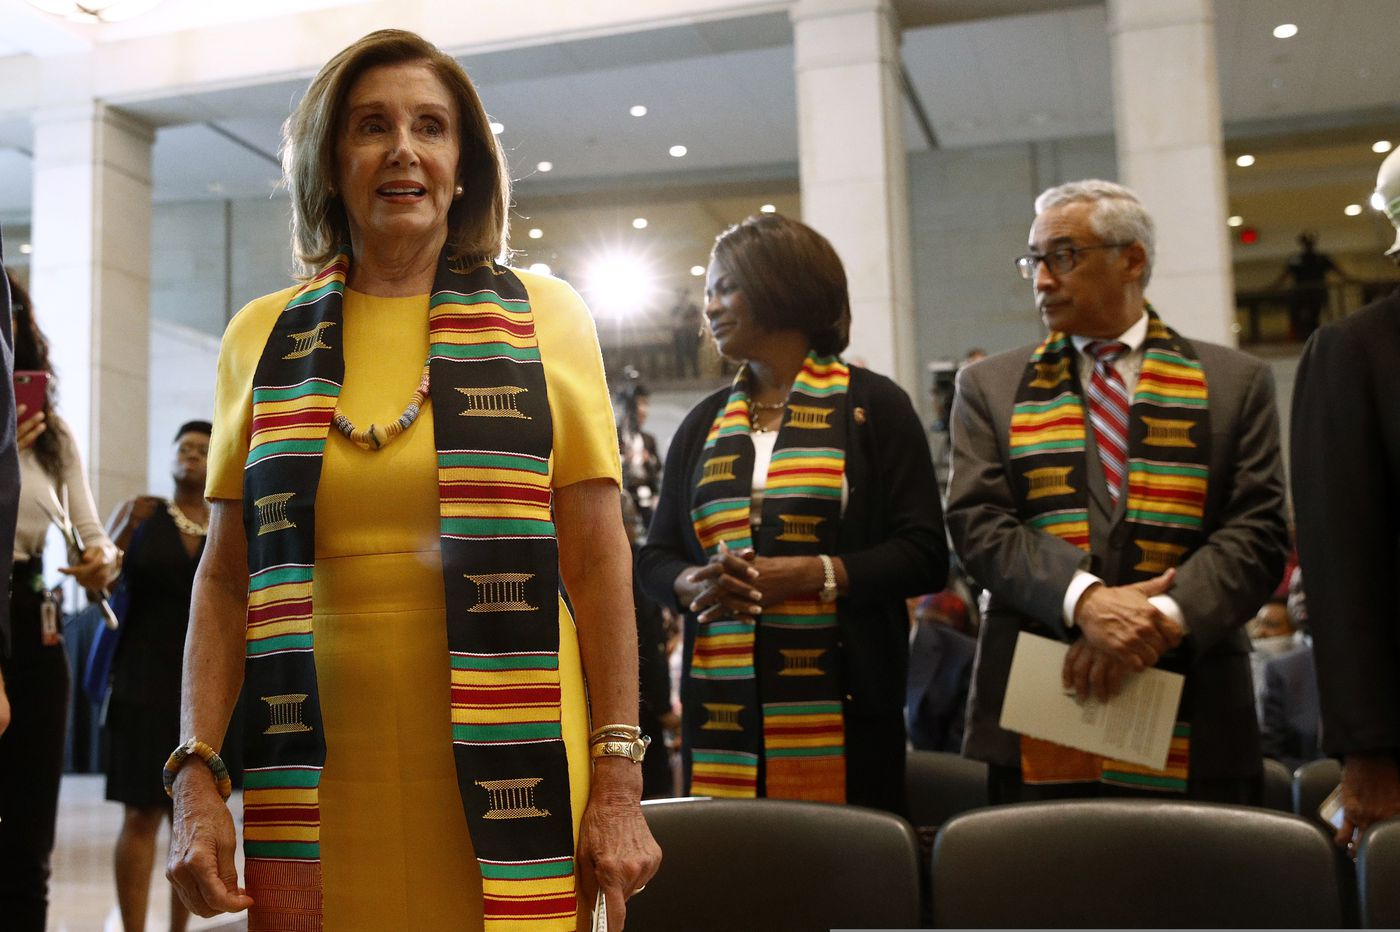 Congress marks 400th anniversary of slaves arriving in US